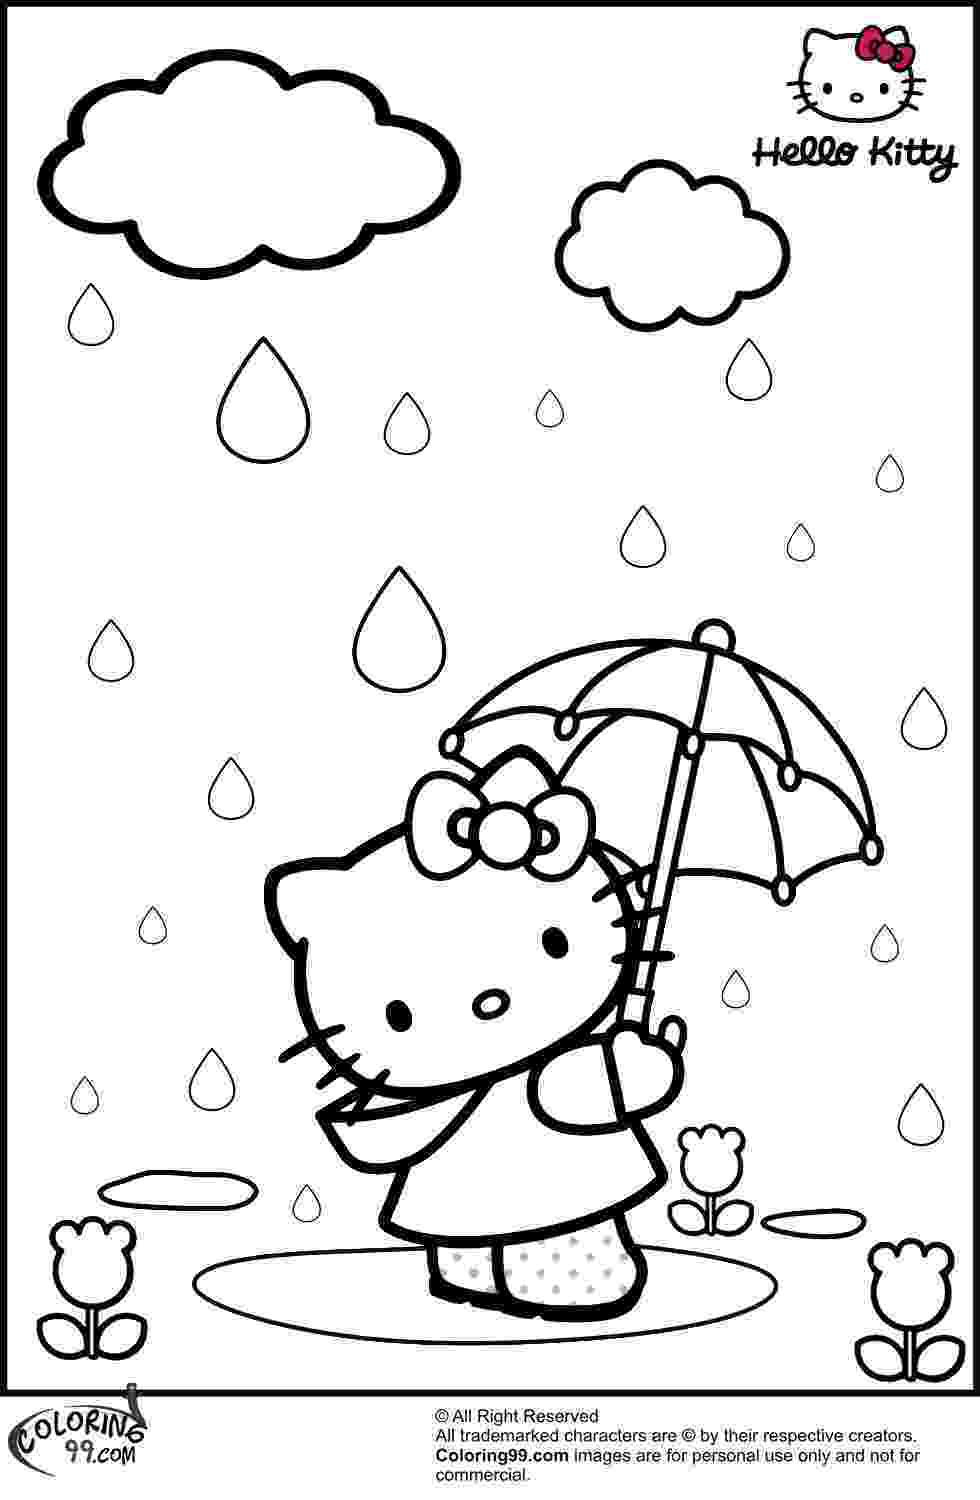 hello kitty coloring book hello kitty coloring pages book kitty hello coloring